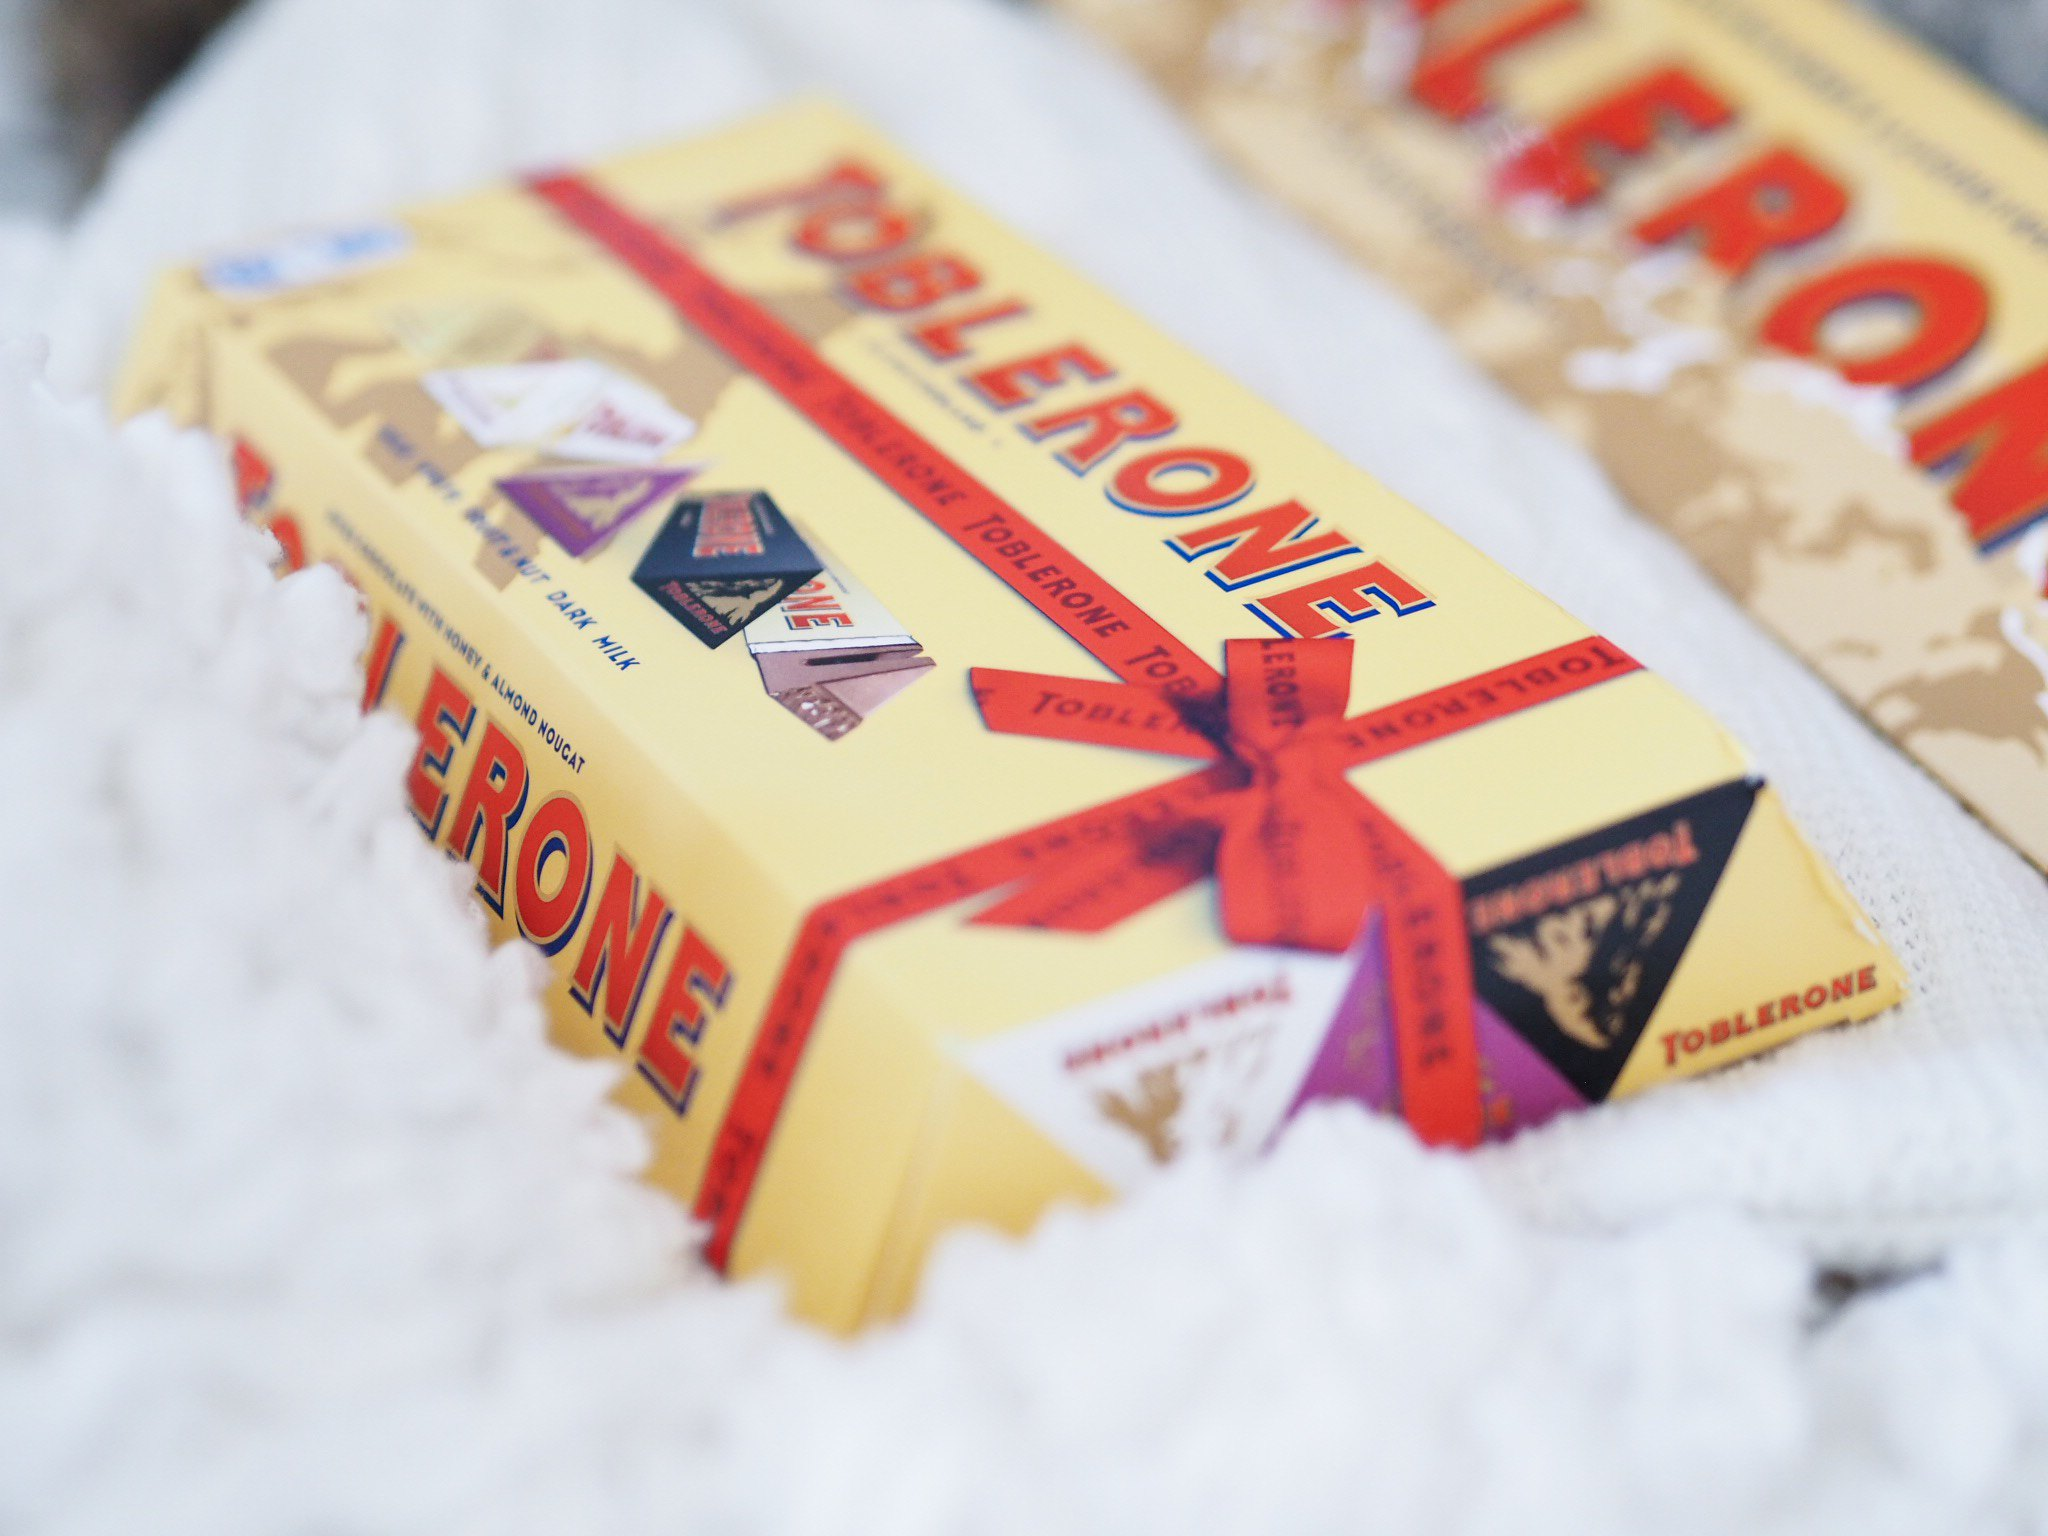 Toblerone stocking filler